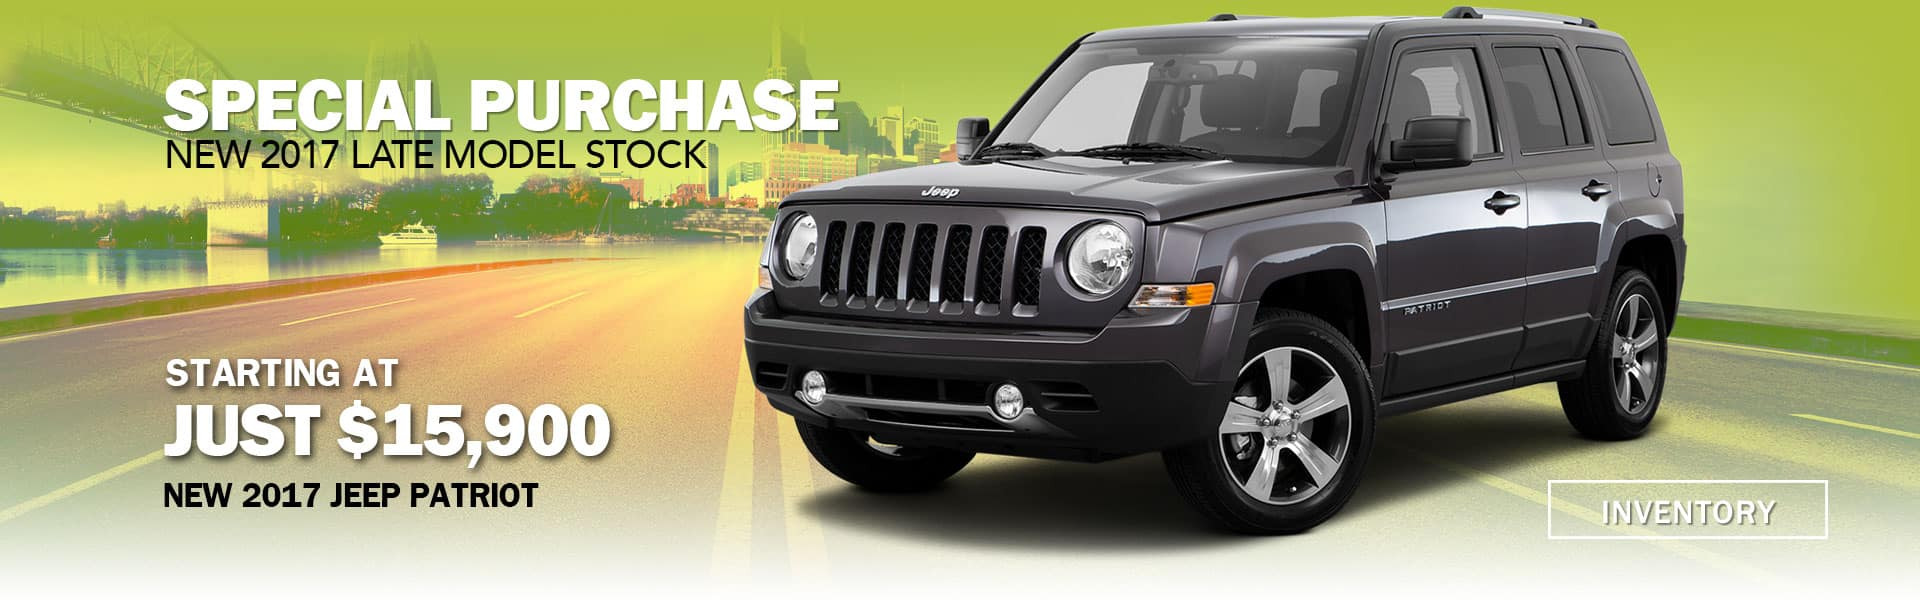 jeep patriot 2017 special